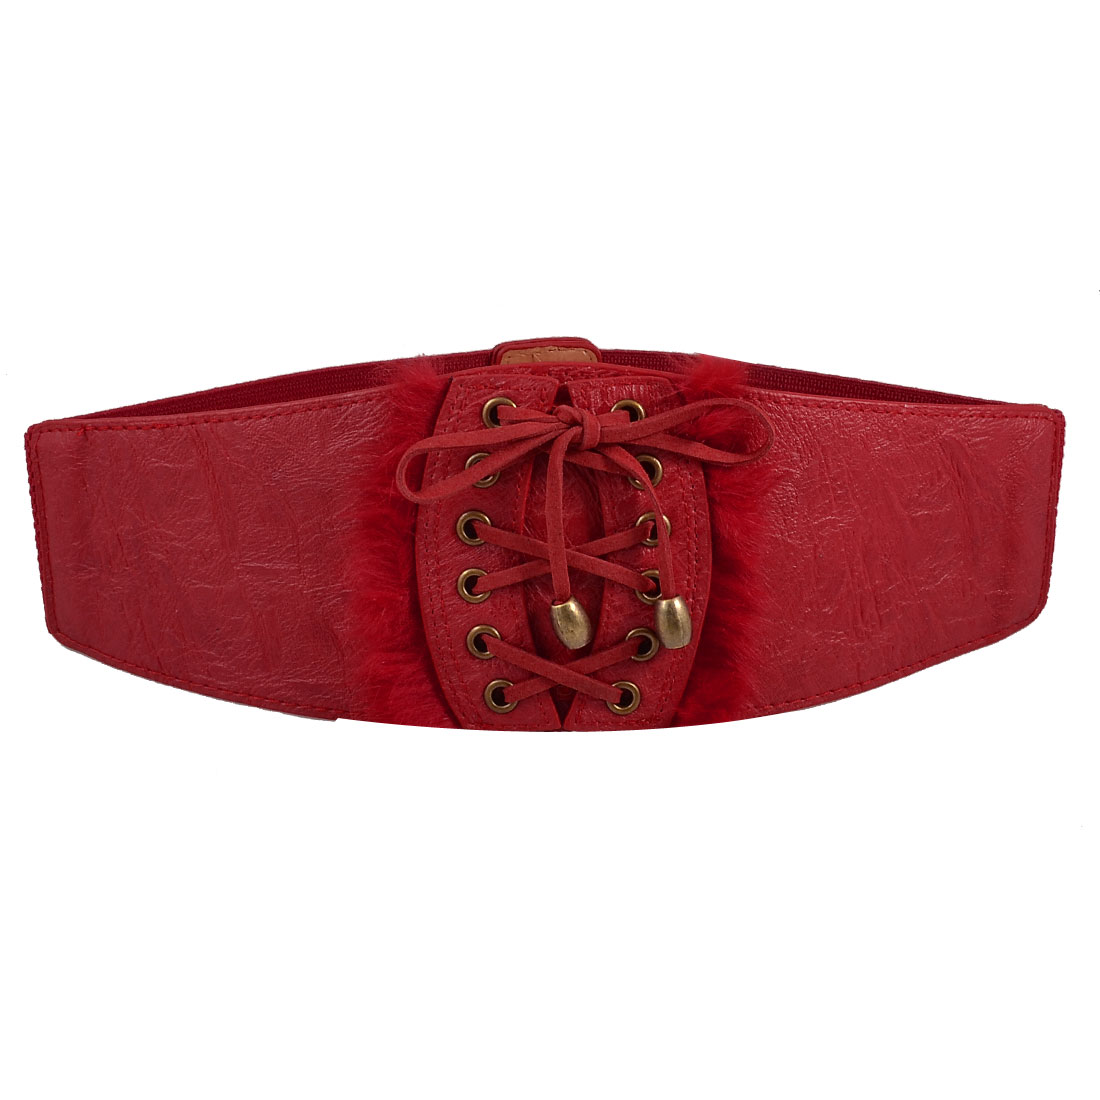 Woman Women Lace-up Style Red Faux Leather Stretchy Waist Belt Band Cinch